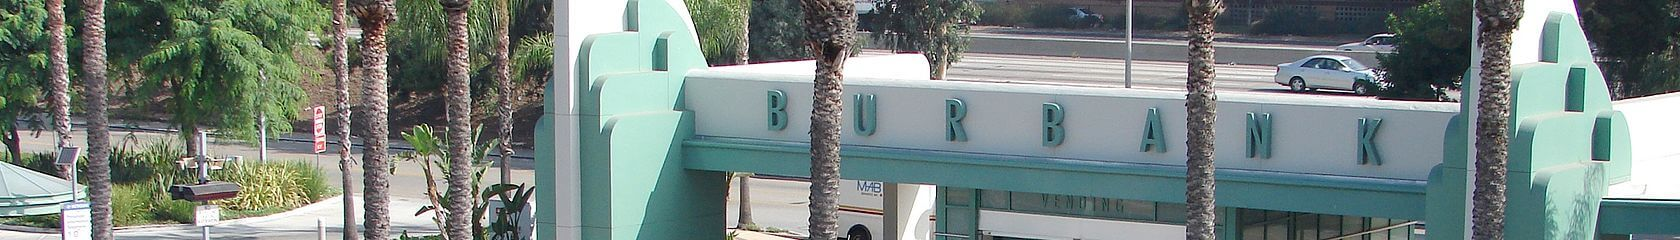 Burbank-flood-services